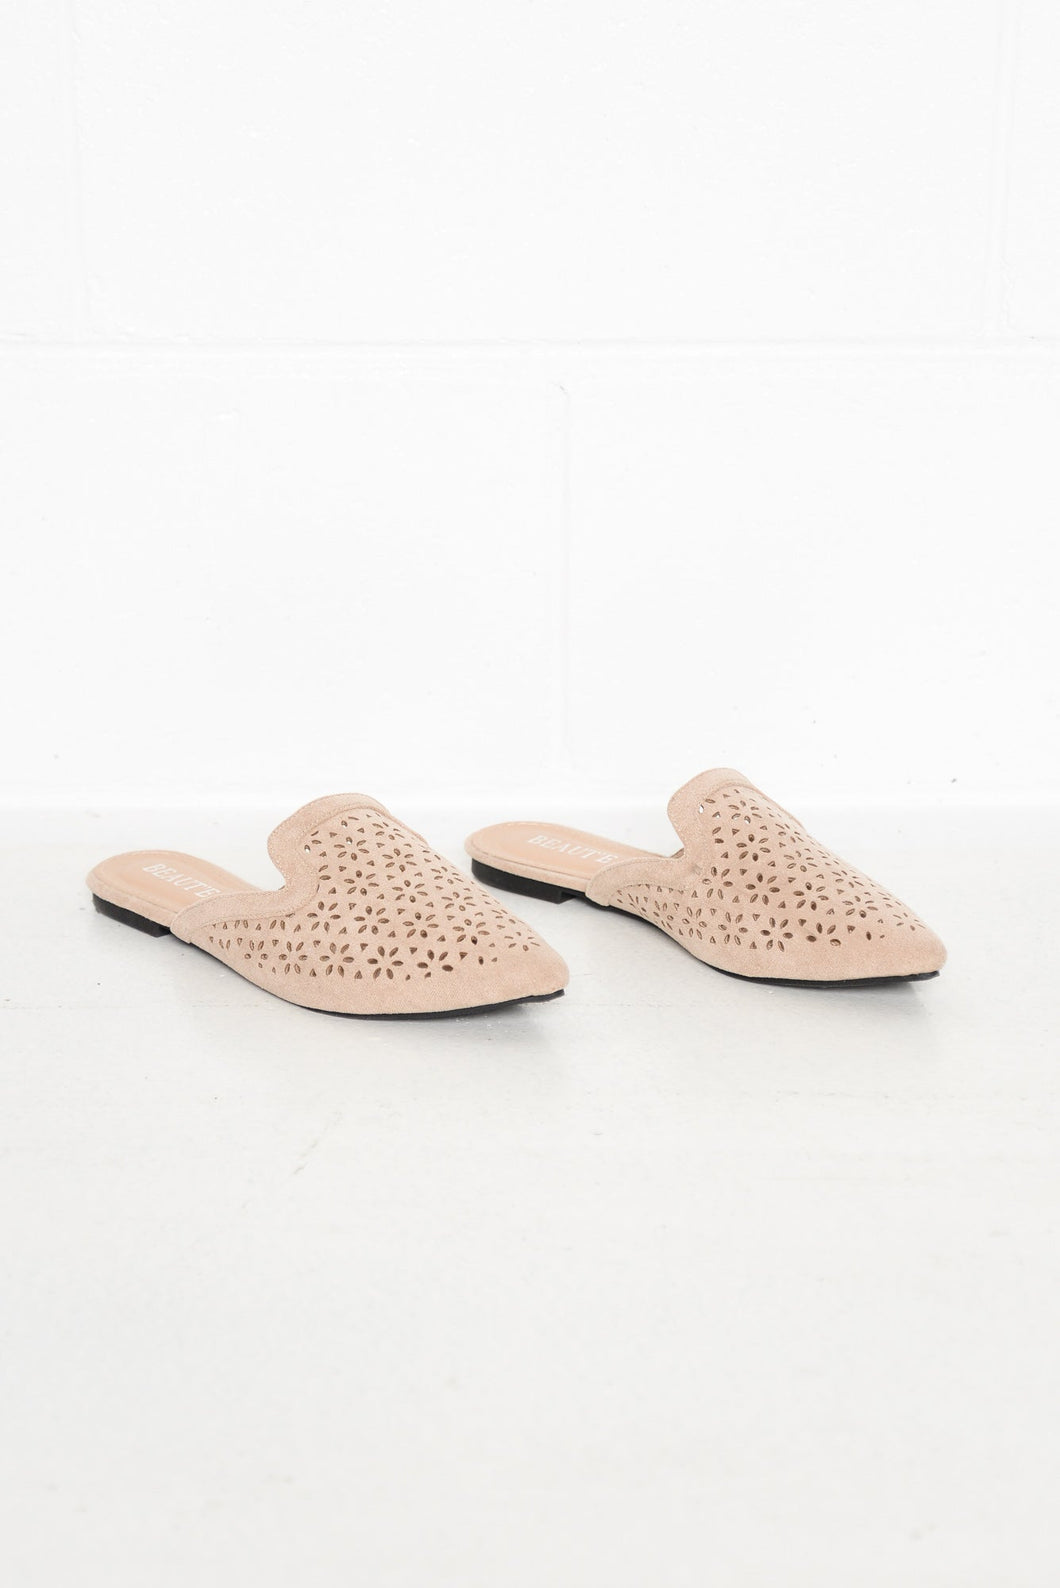 Daisy Nude Cut Out Mule